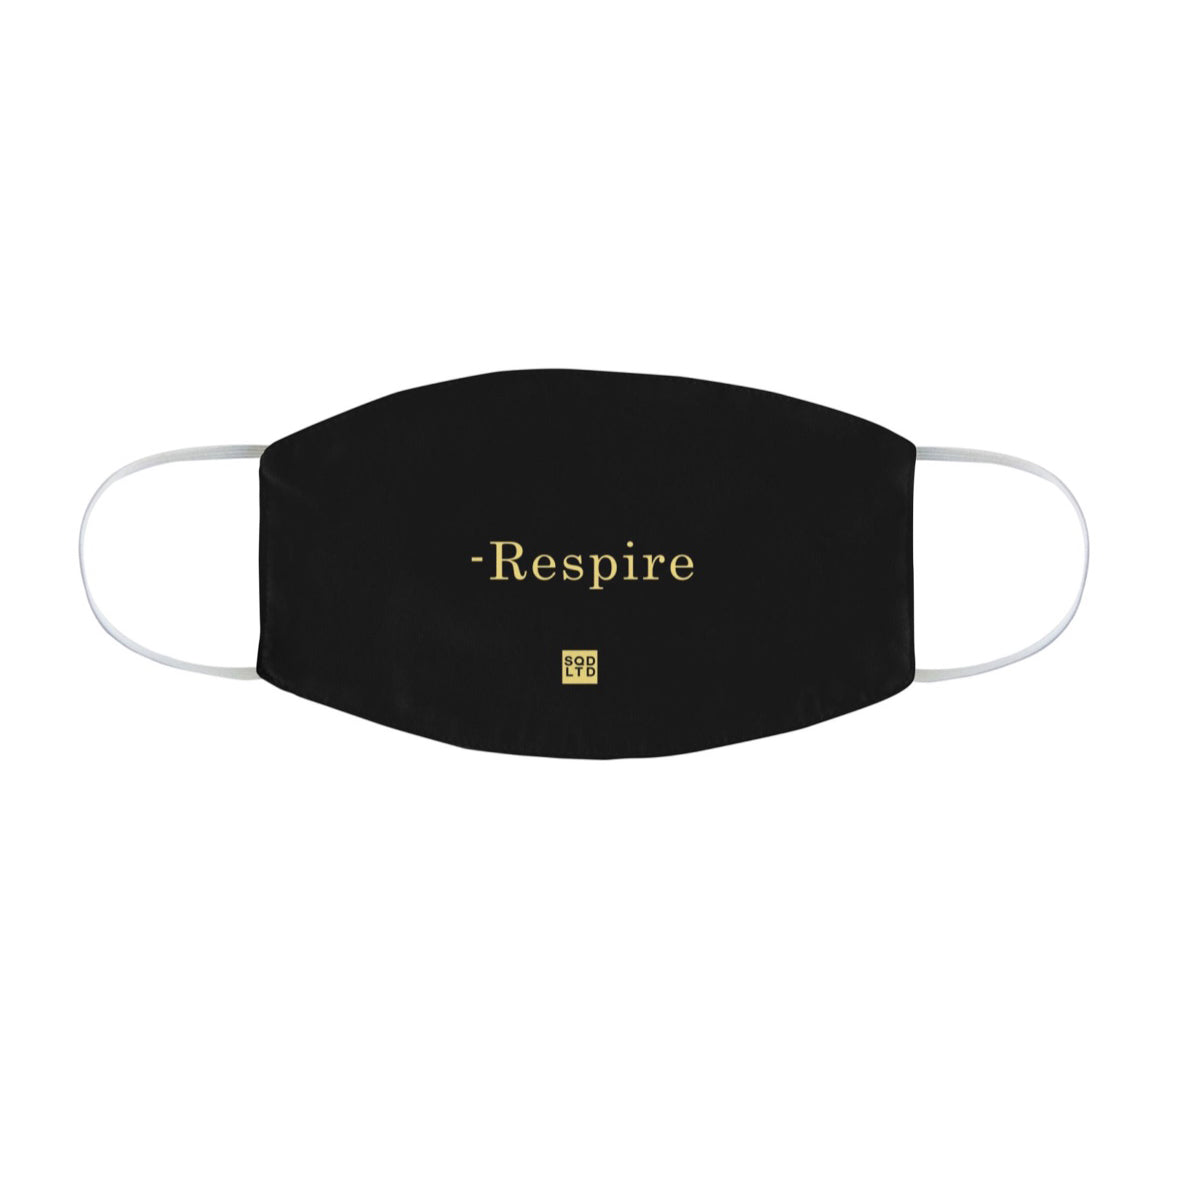 Respire Face Mask B by Squared Limited